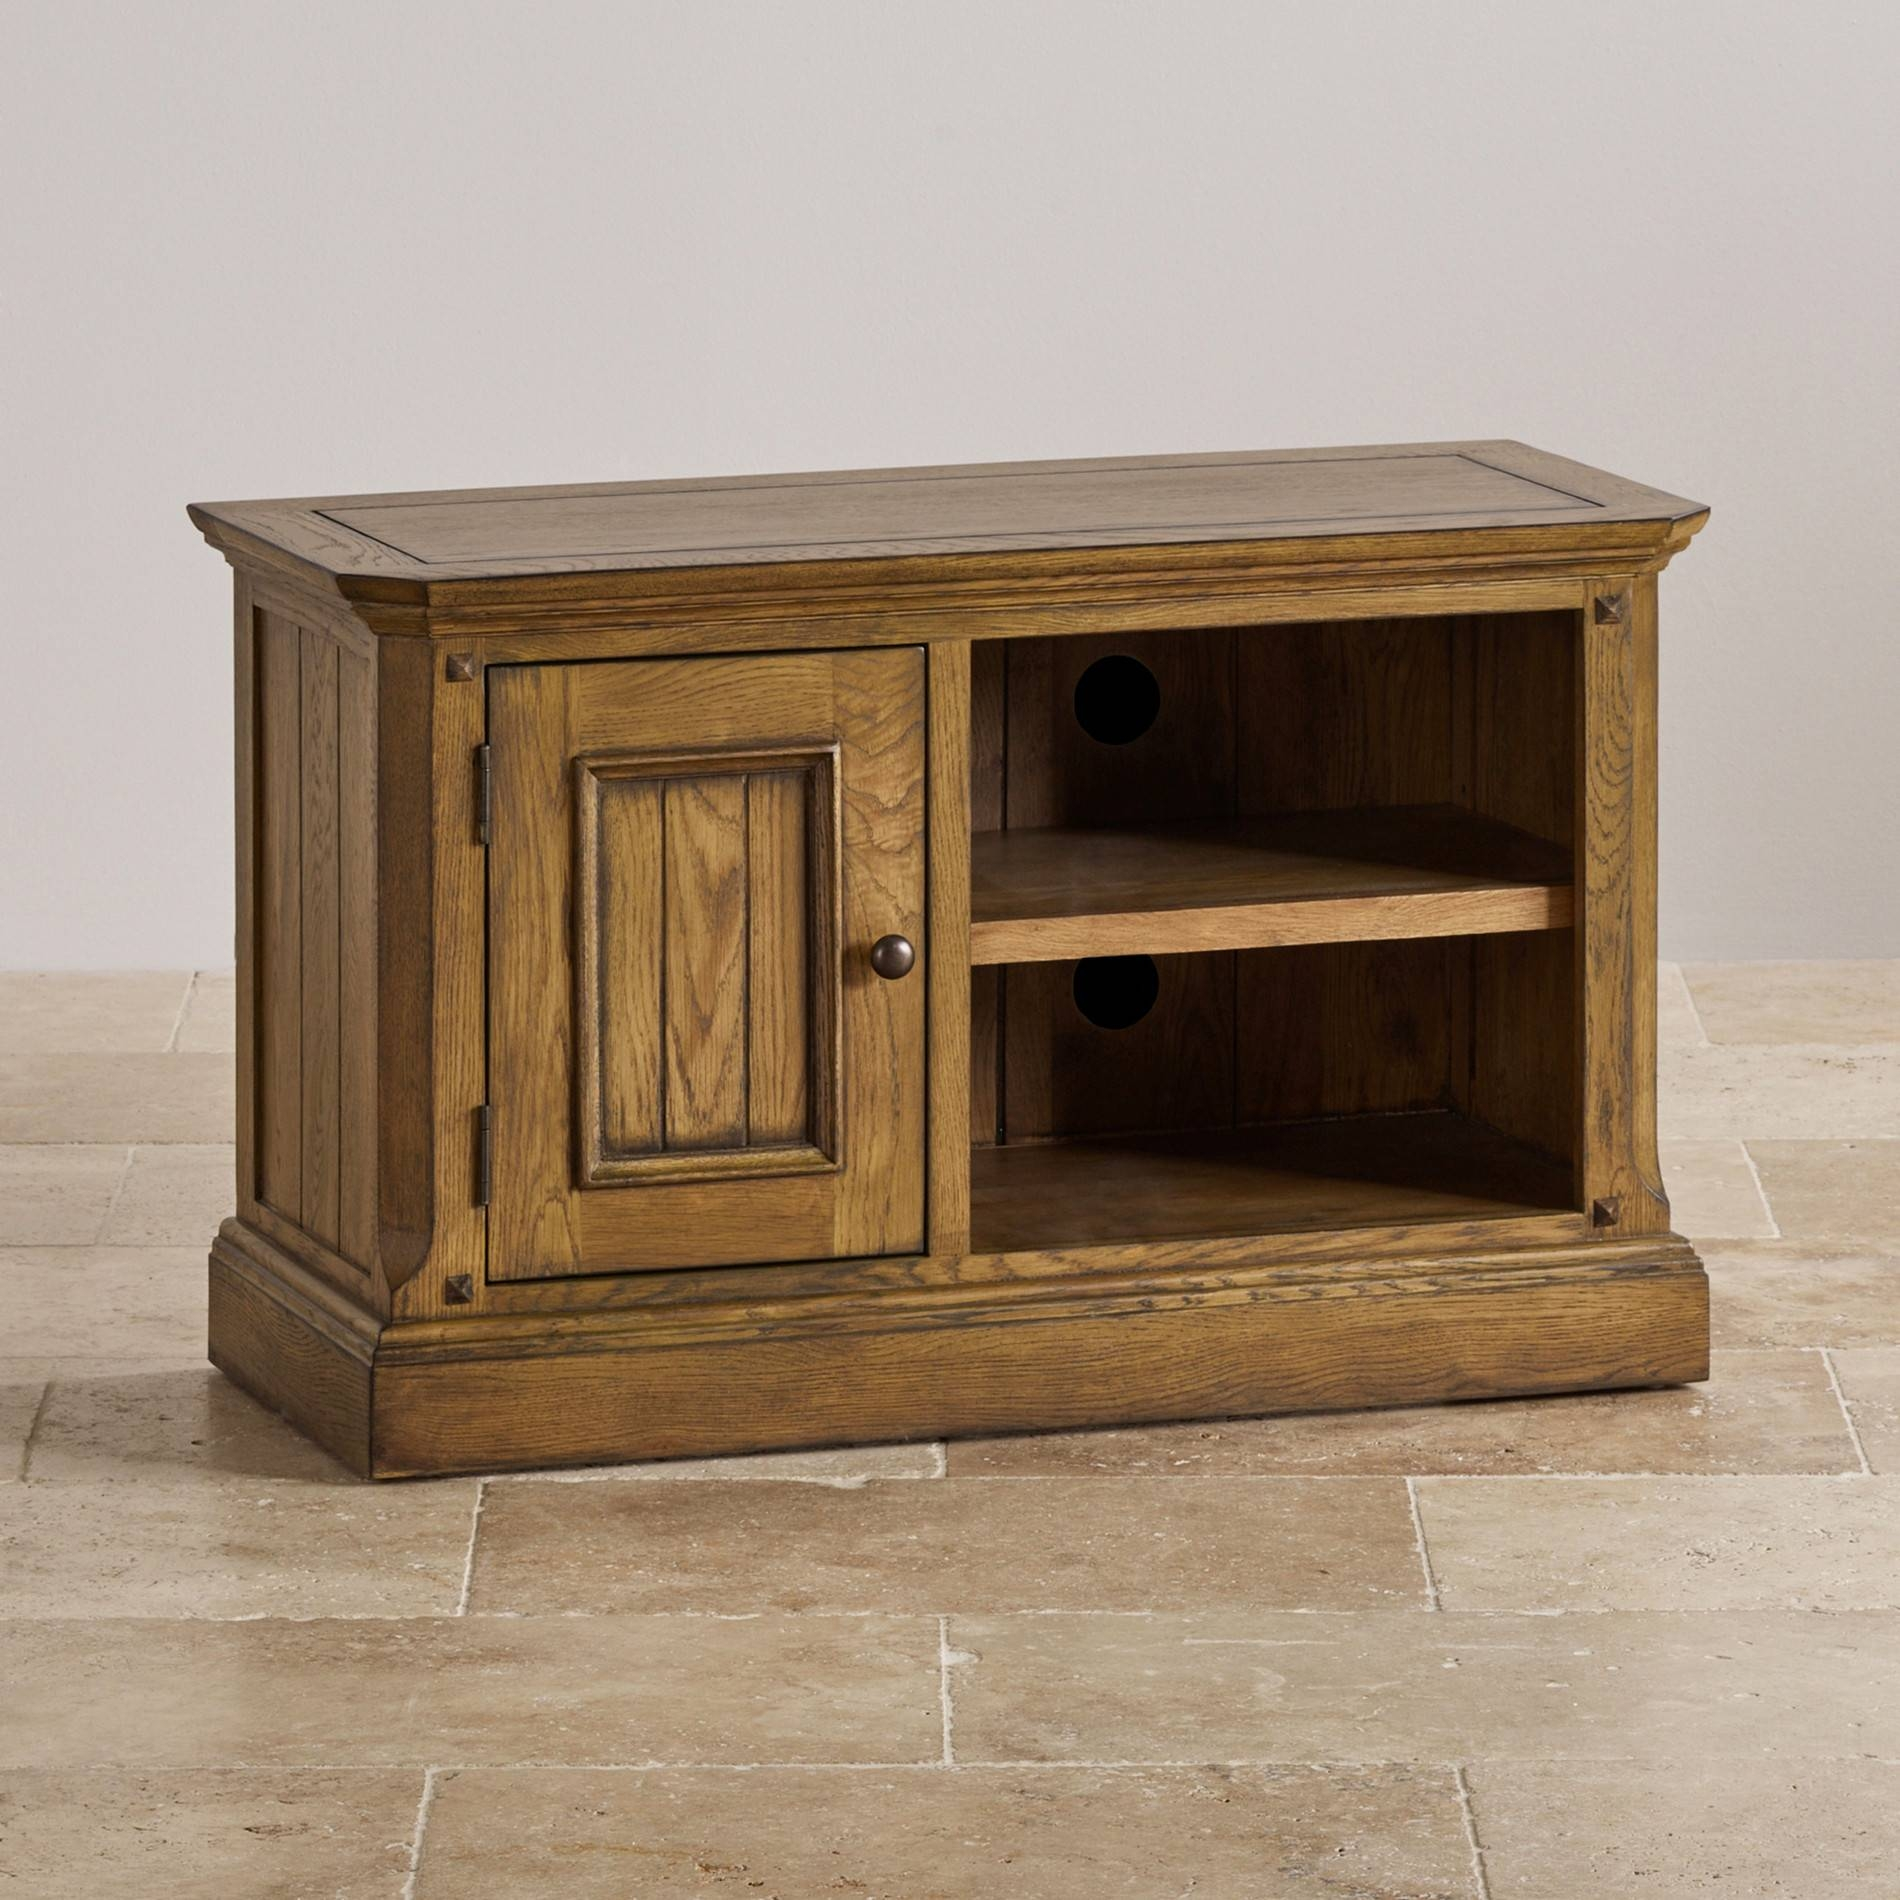 Manor House Small Tv Unit In Solid Oak | Oak Furniture Land with regard to Small Tv Cabinets (Image 6 of 15)